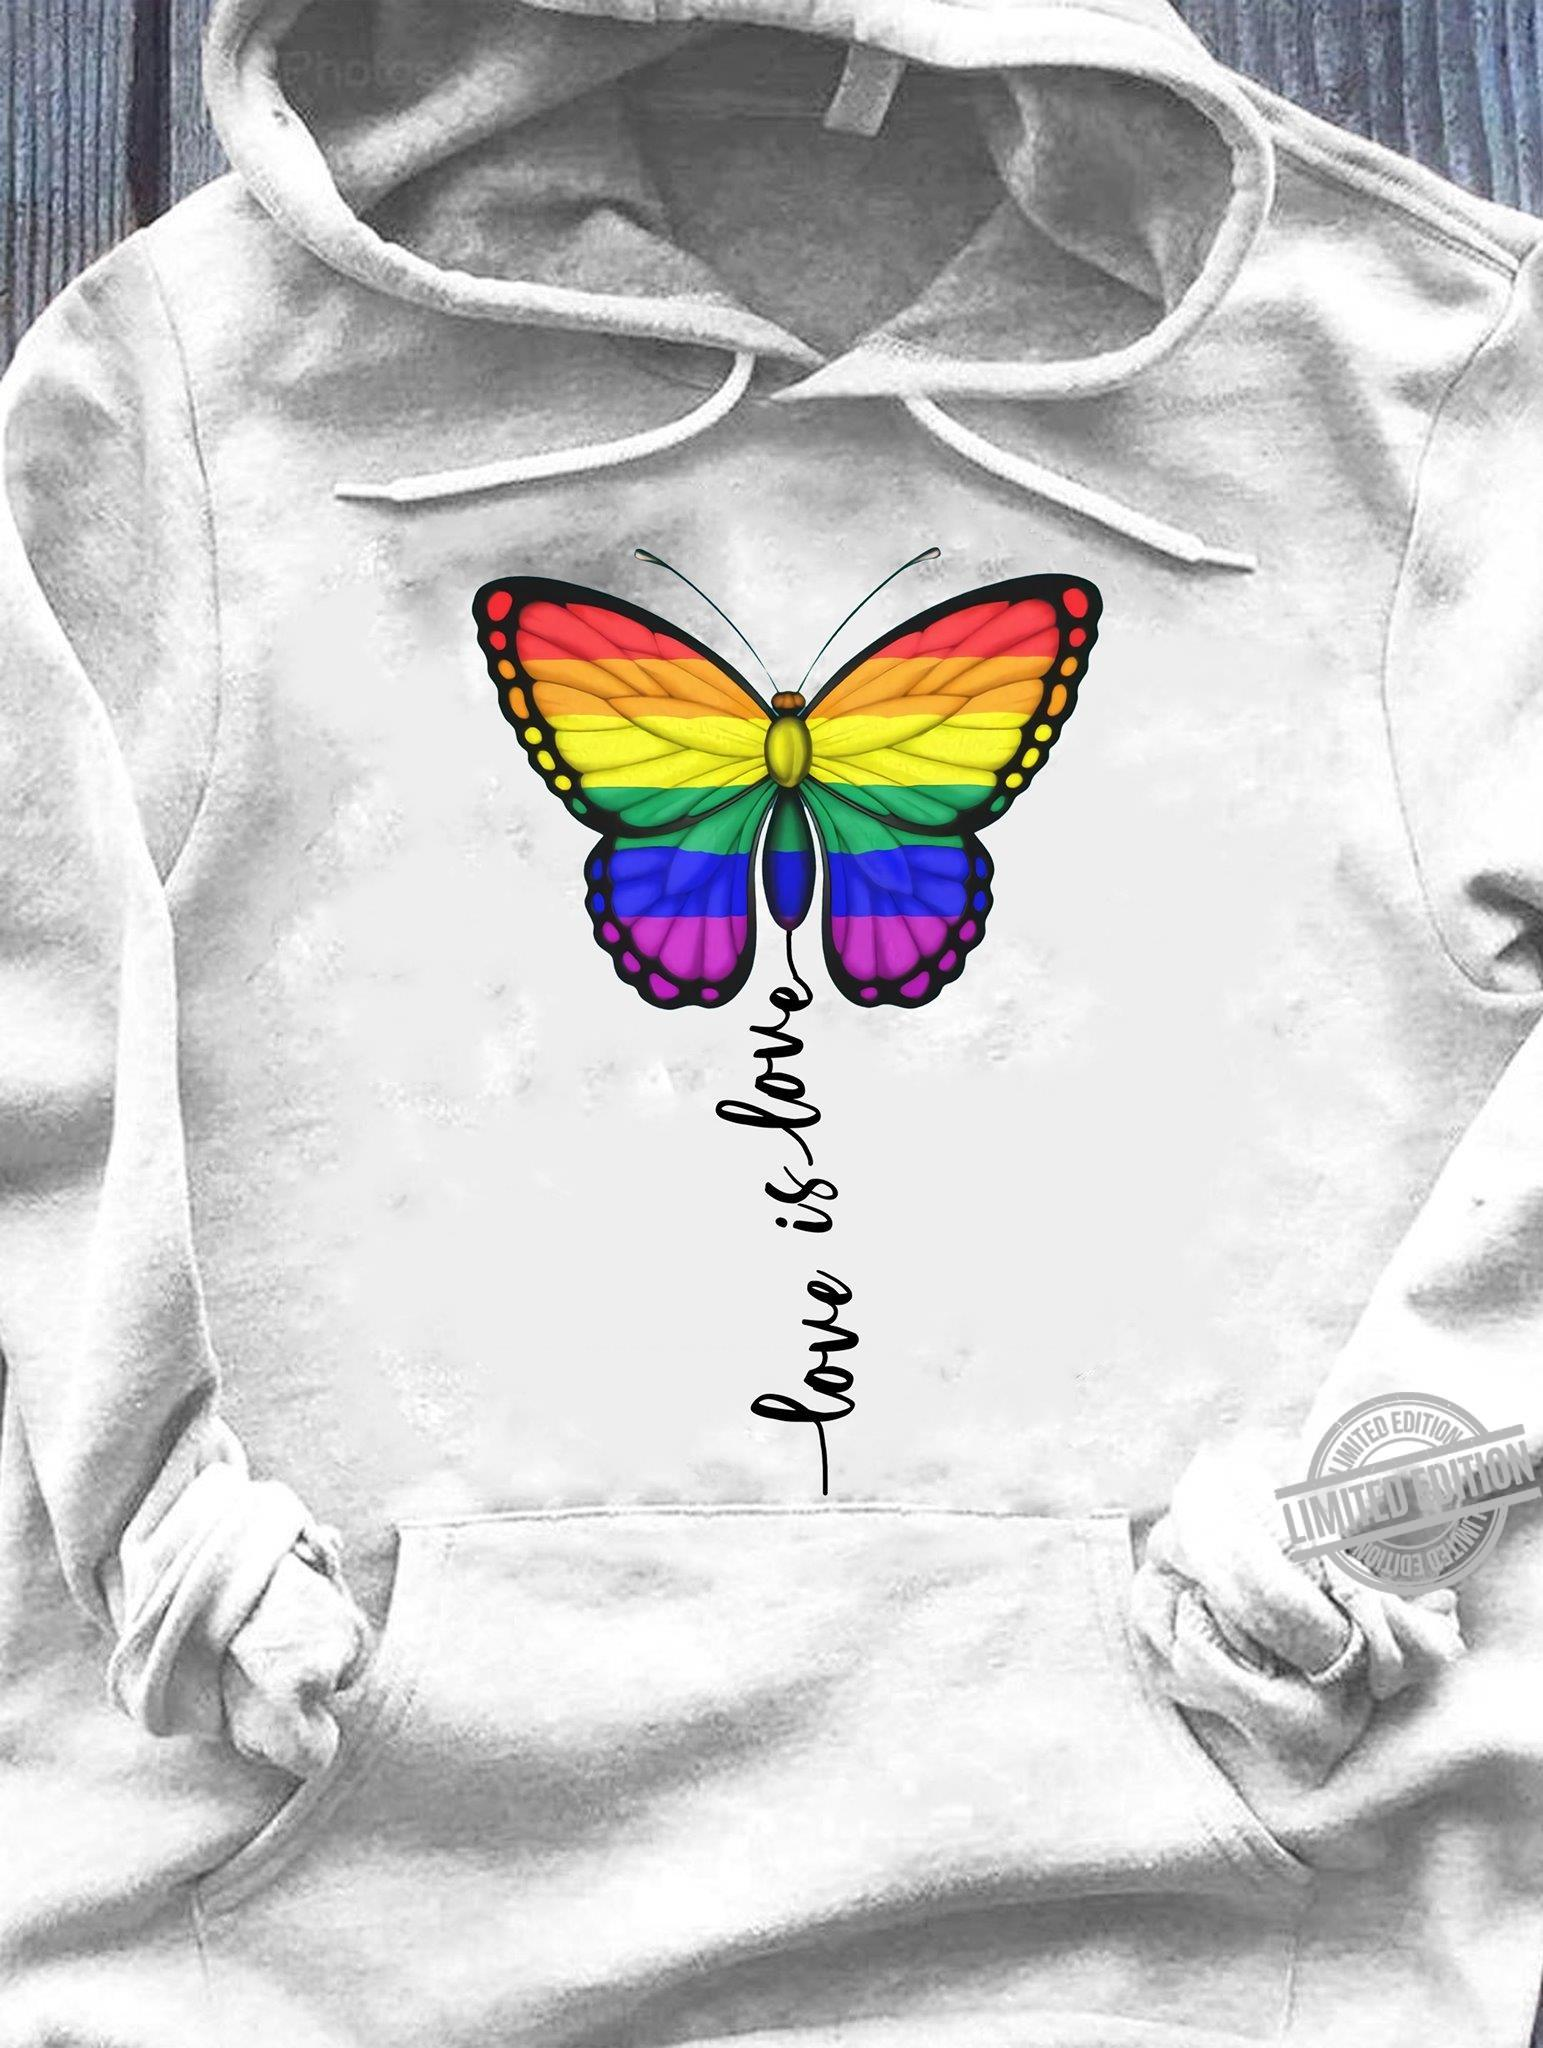 Butterfly love is love pride shirt